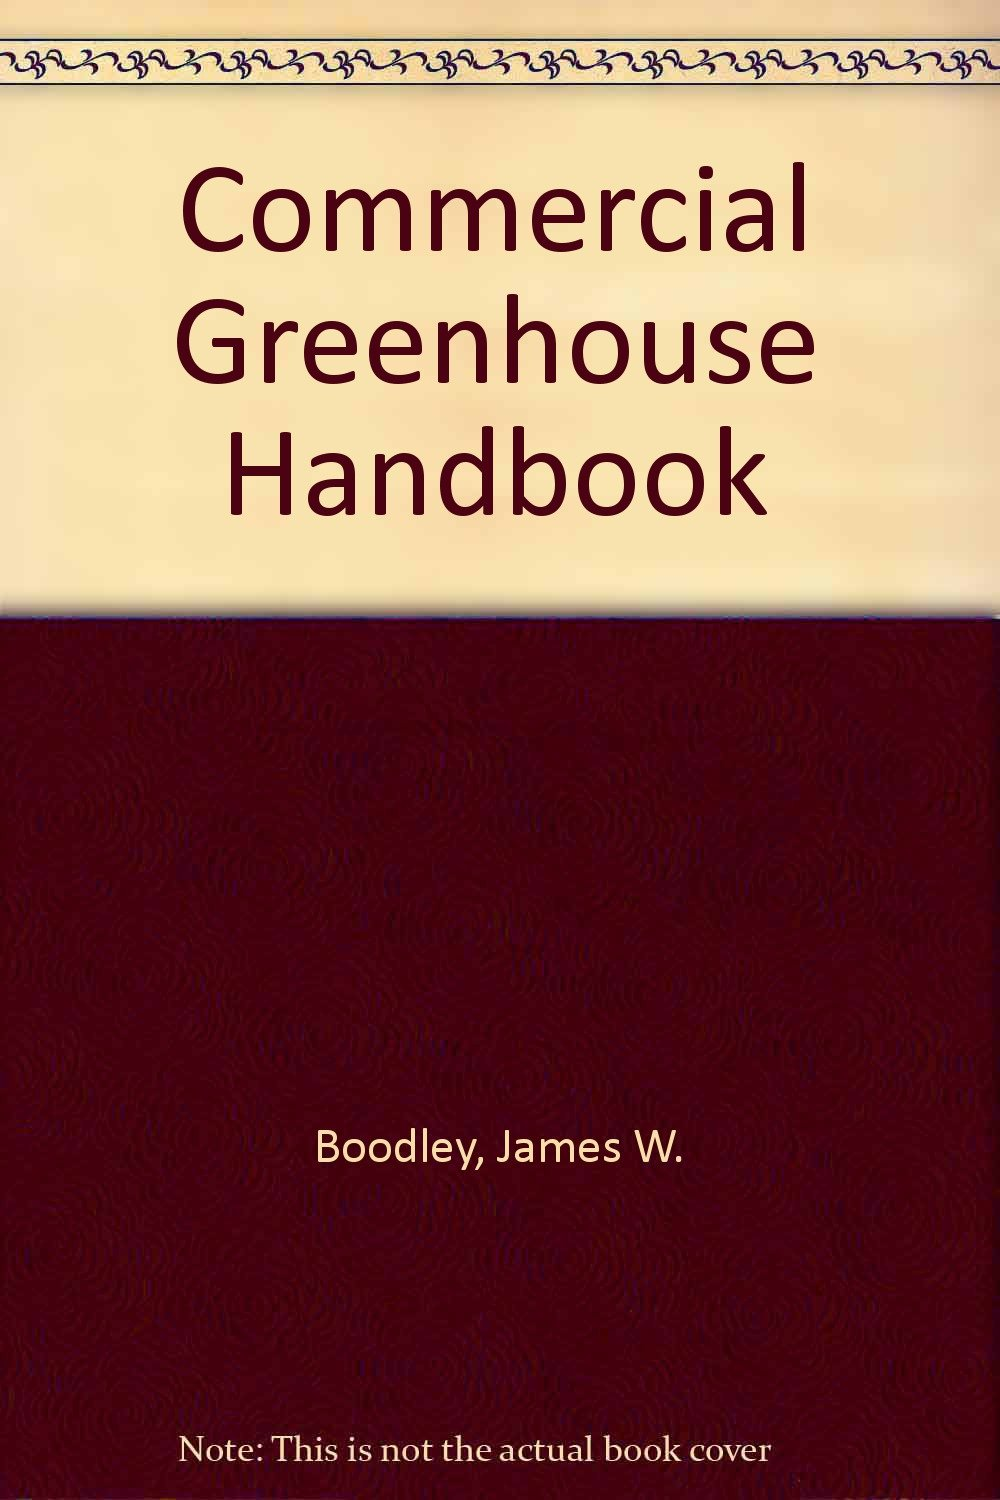 The Commercial Greenhouse Handbook